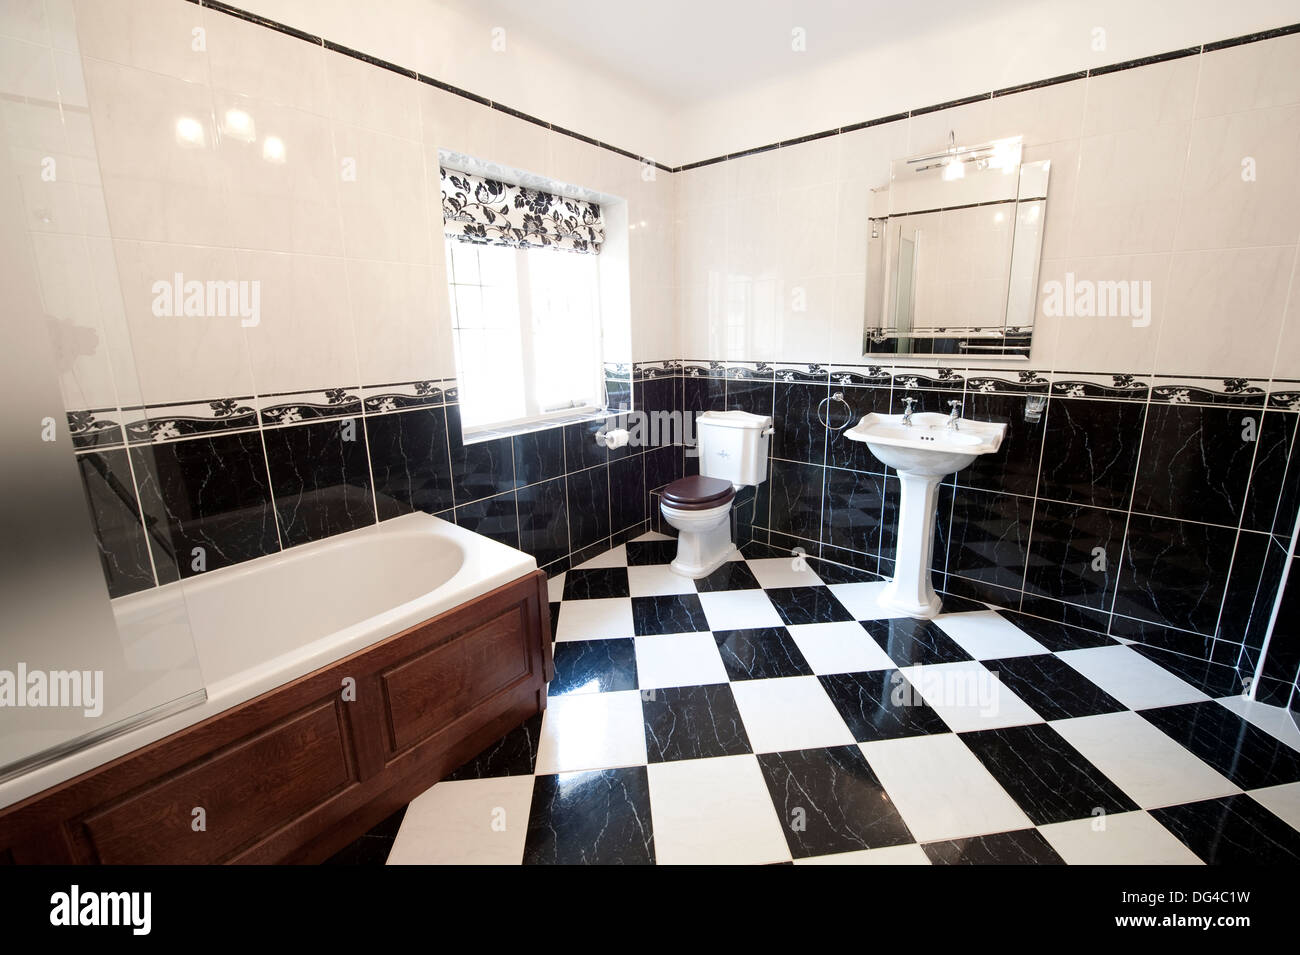 Washroom Bath Tub Geopic Stock Photos & Washroom Bath Tub Geopic ...